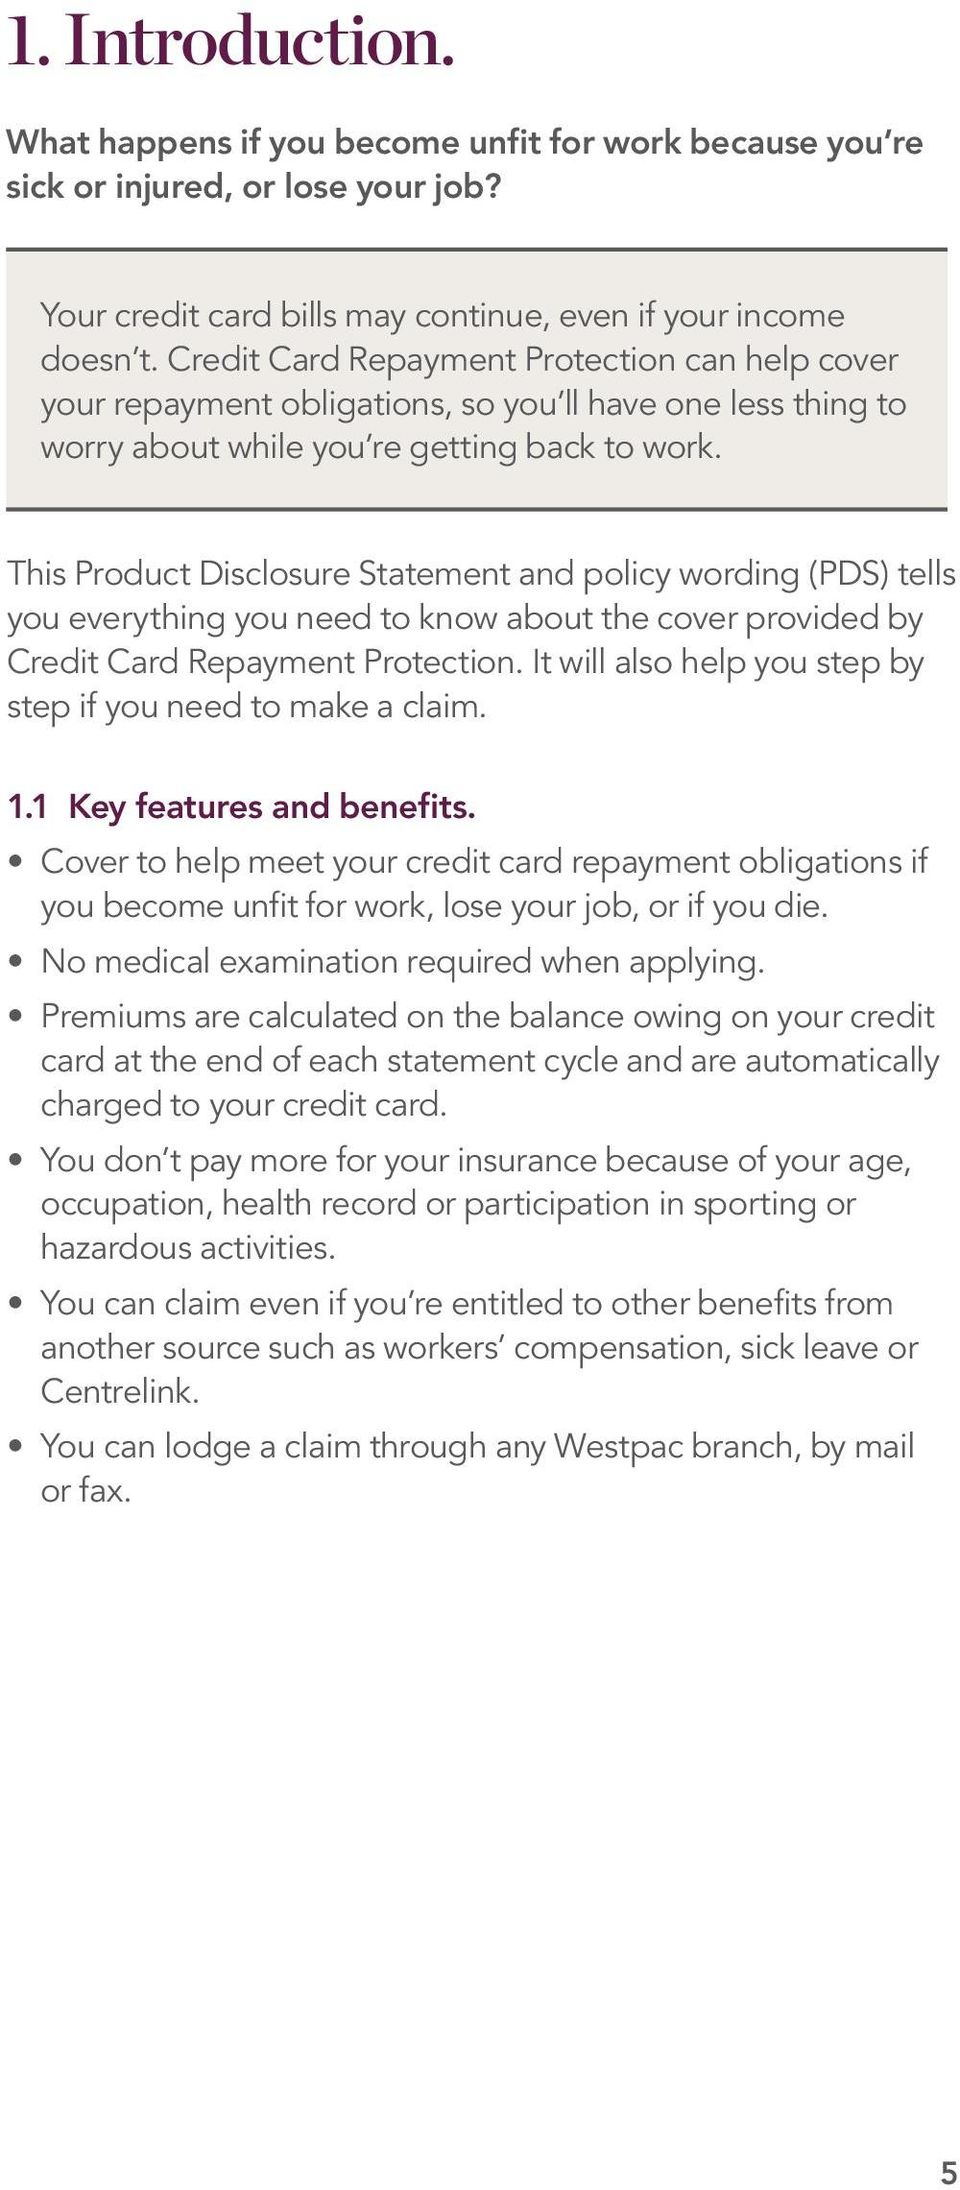 This Product Disclosure Statement and policy wording (PDS) tells you everything you need to know about the cover provided by Credit Card Repayment Protection.